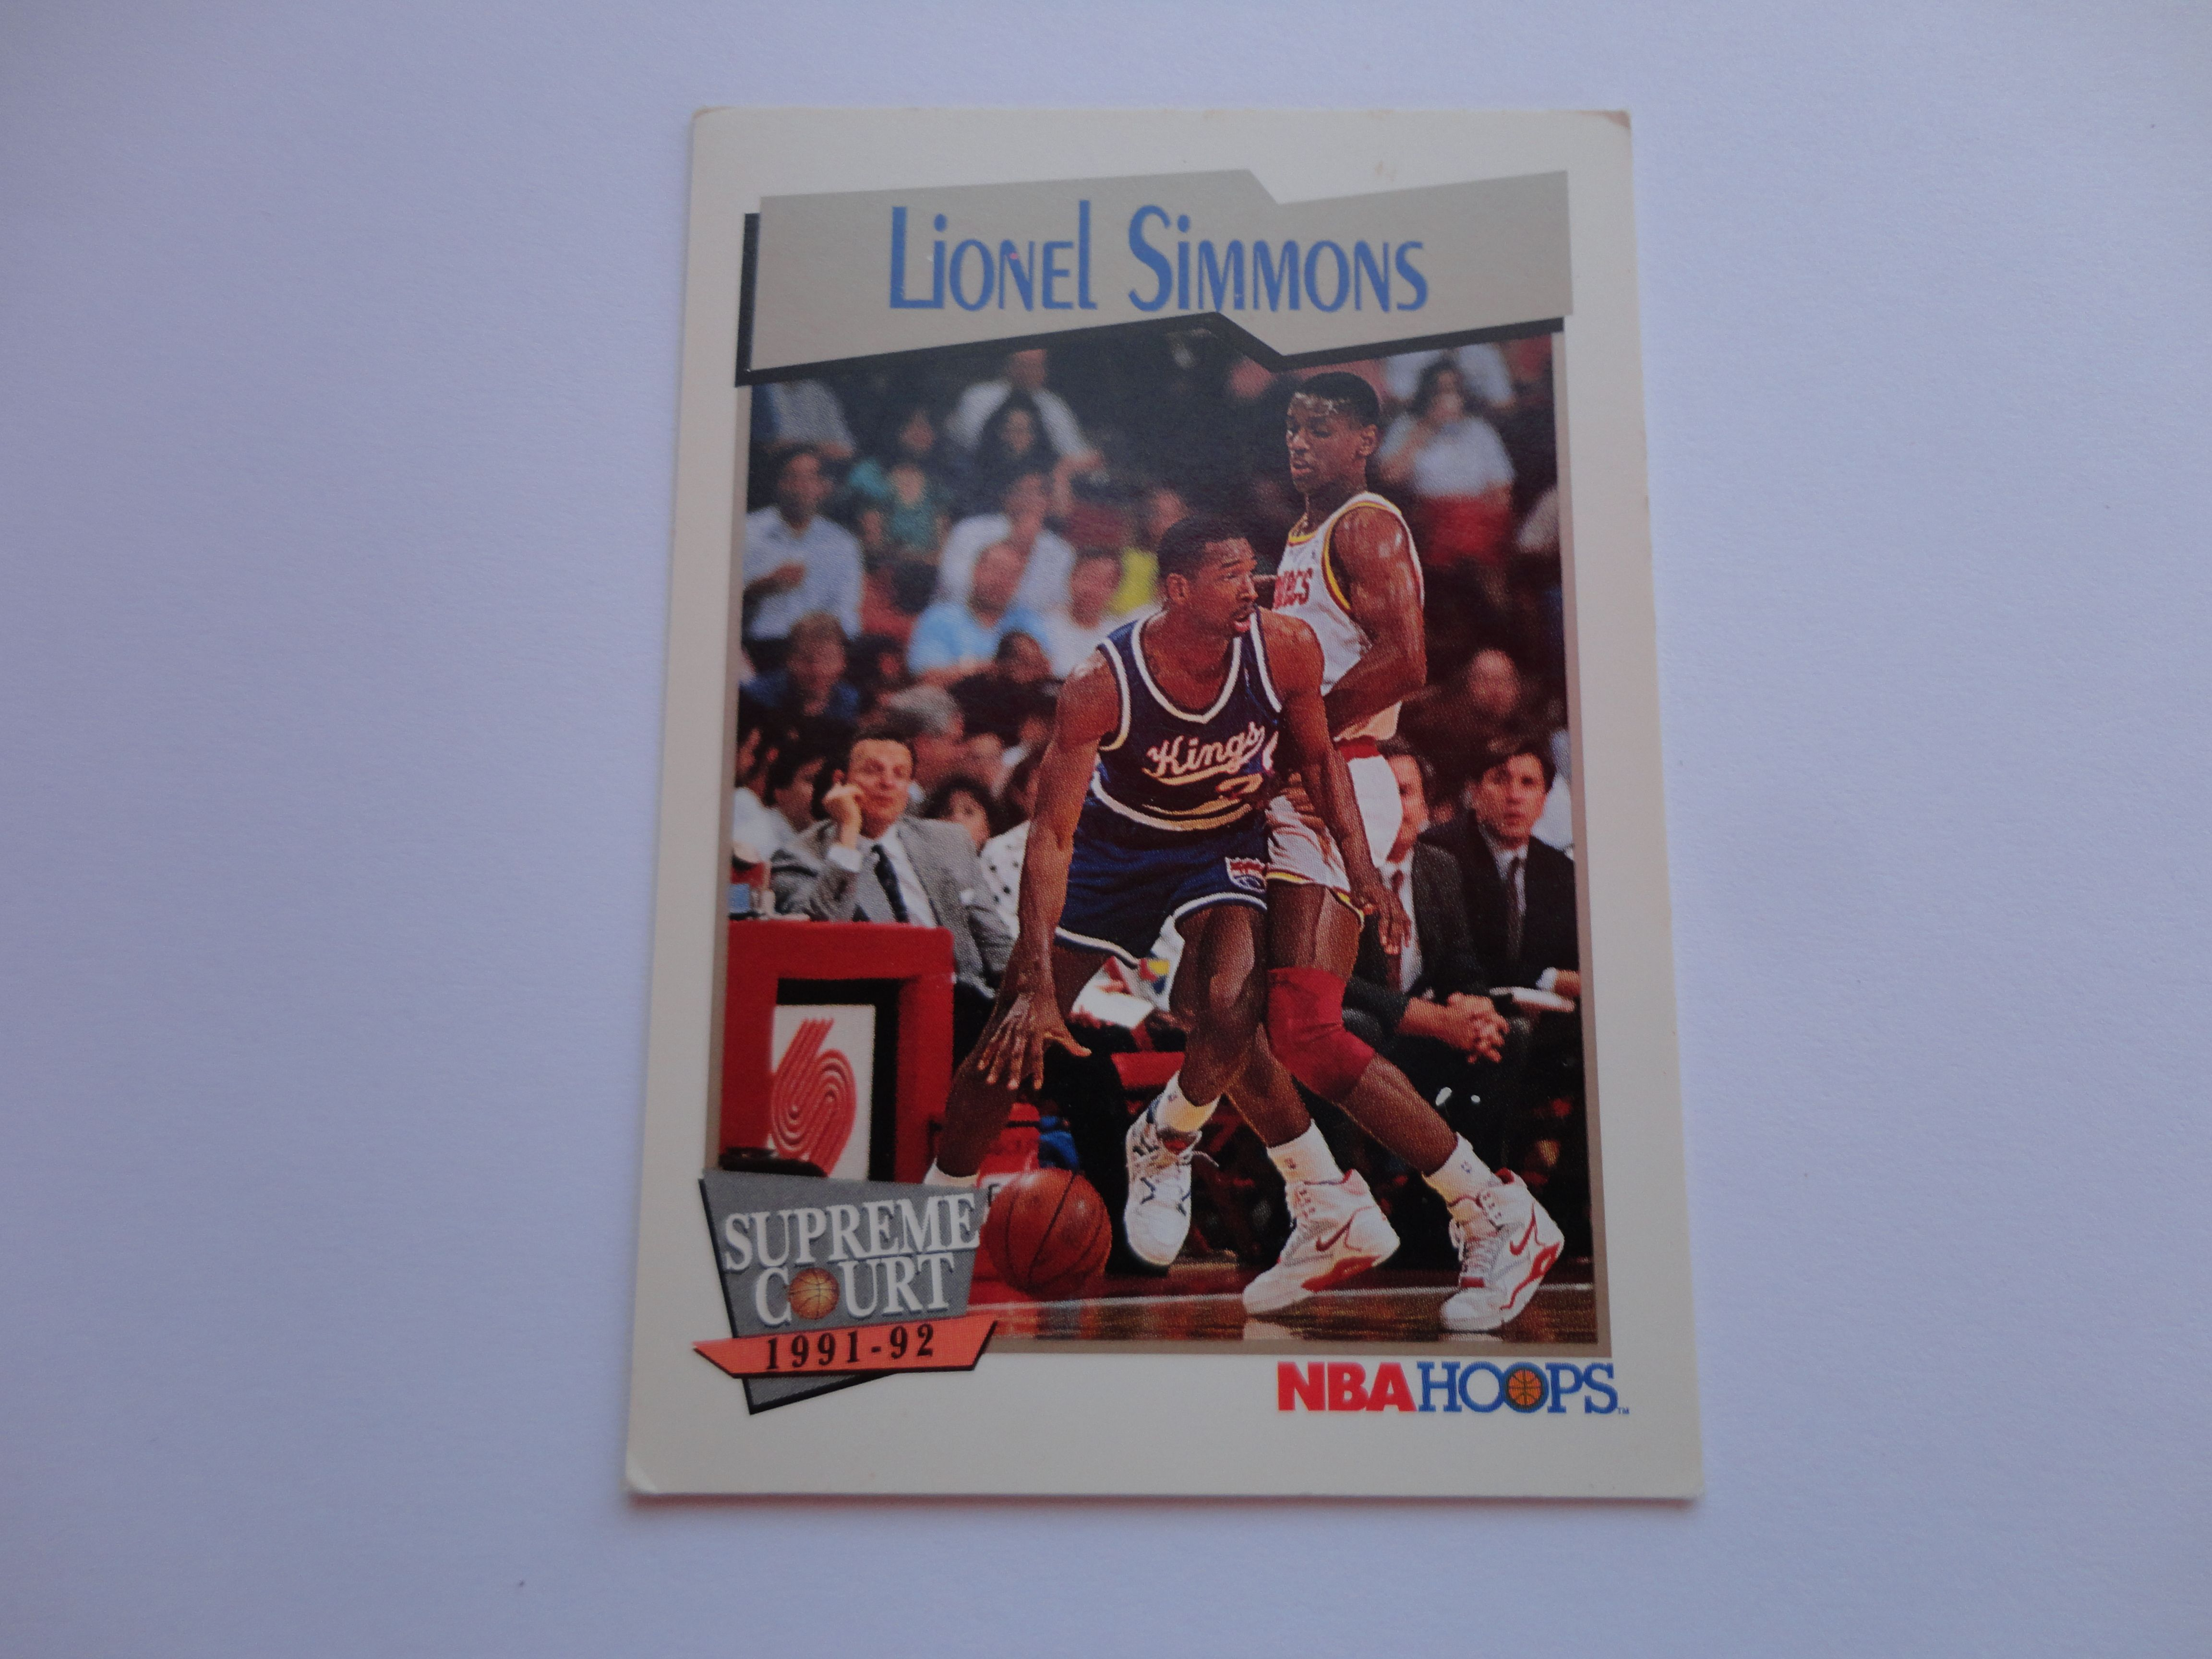 Lionel Simmons NBA Hoops Supreme Court 1991 92 Basketball Card